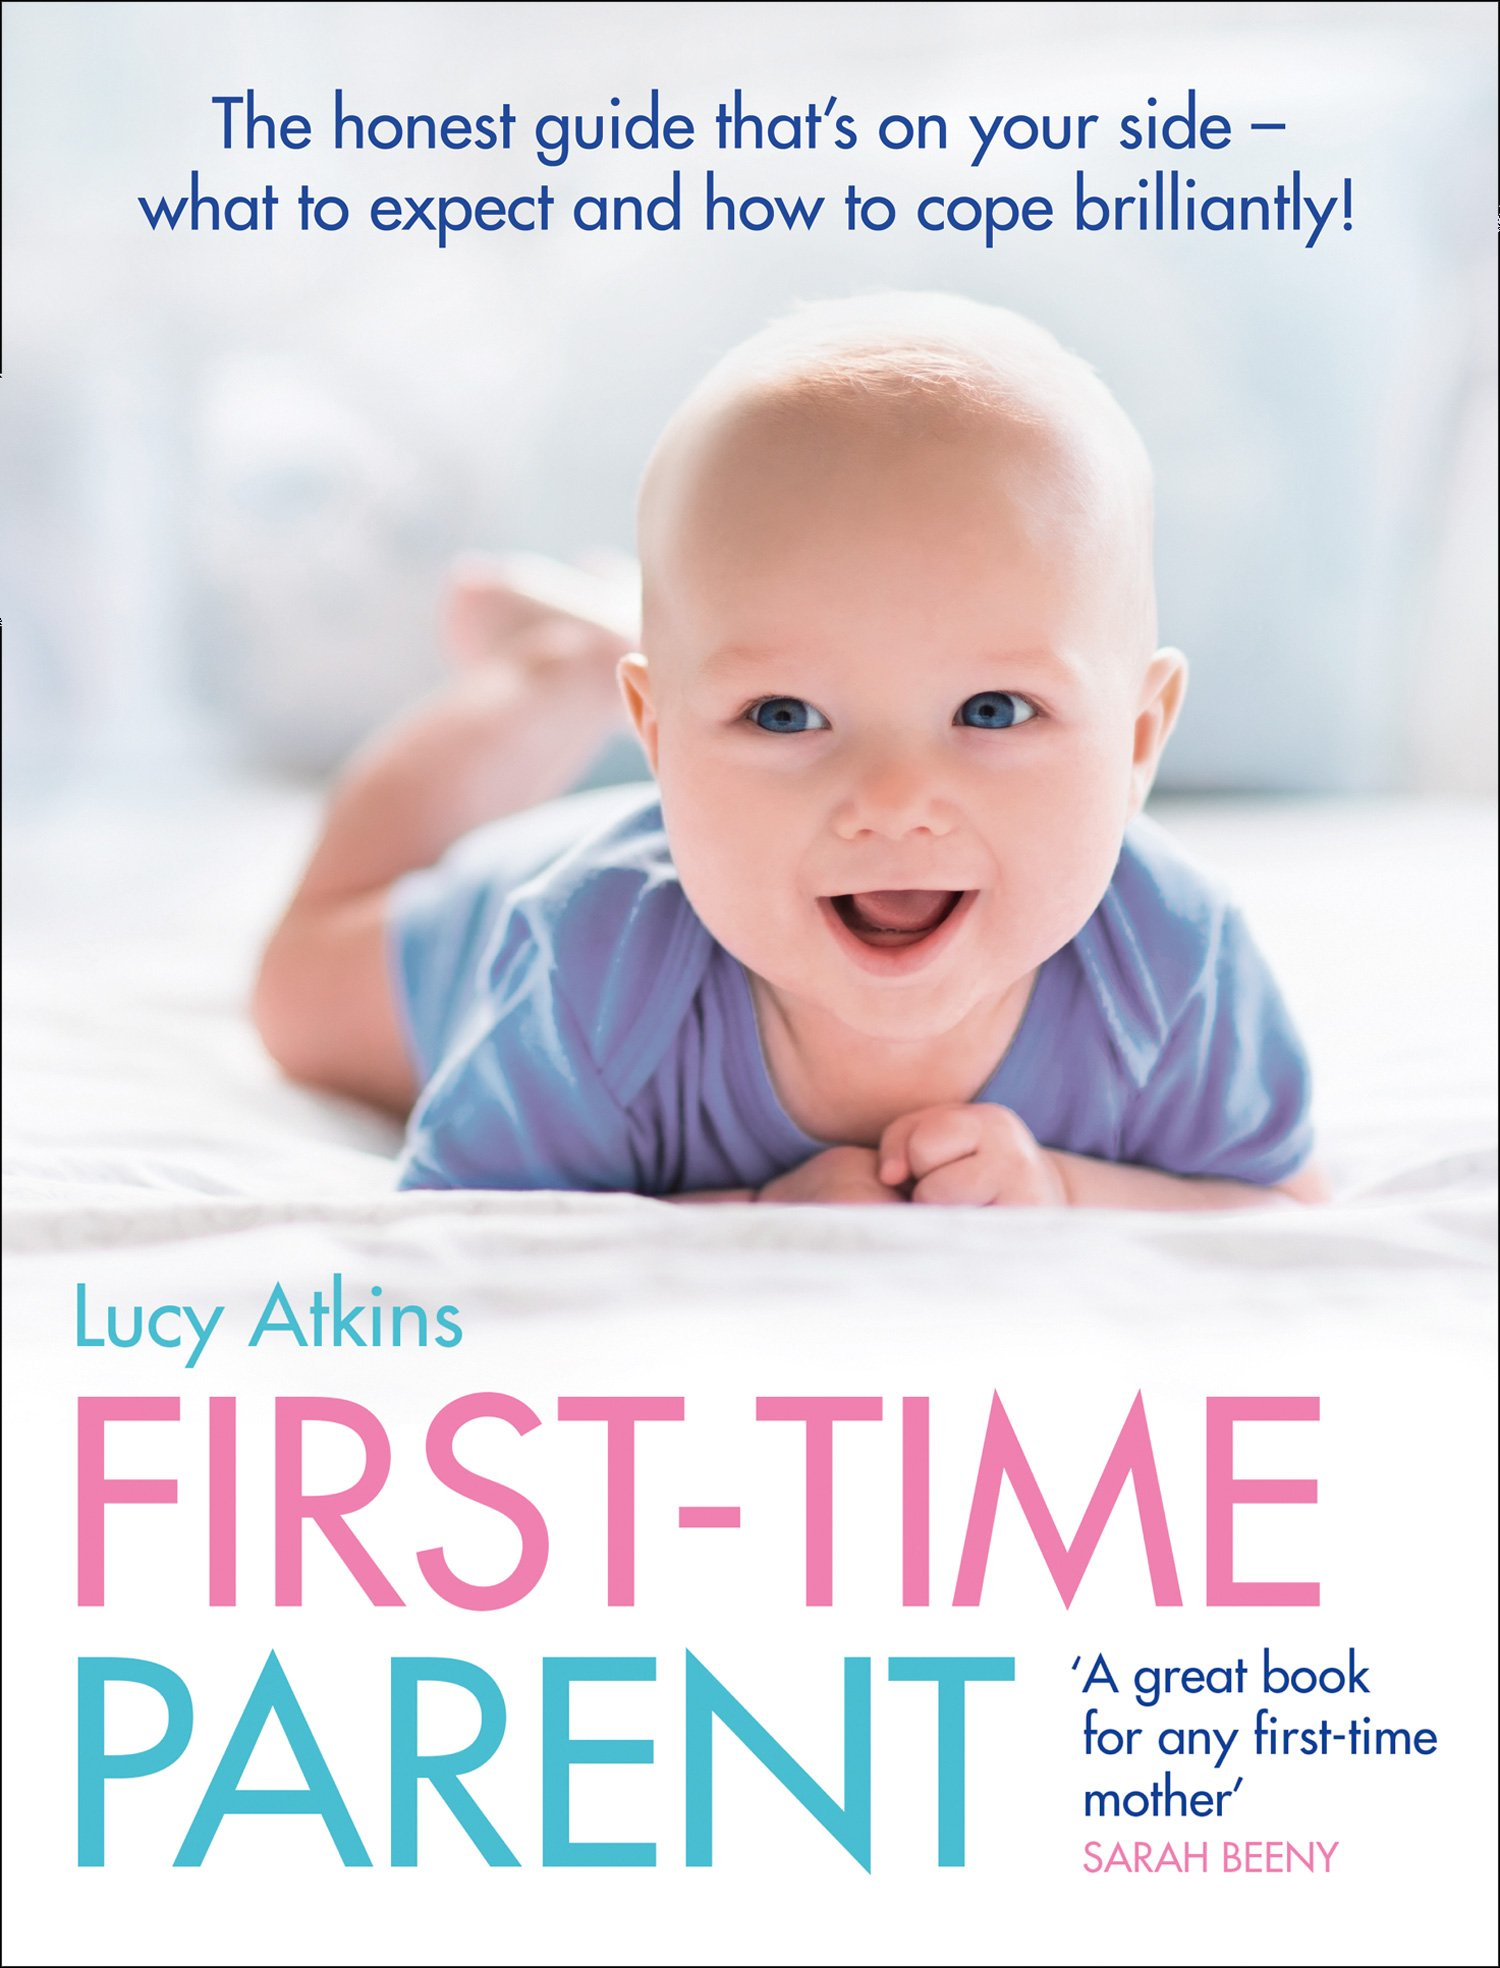 First Time Parent The Honest Guide To Coping Brilliantly And Staying Sane In Your Baby S First Year Amazon Co Uk Atkins Lucy 9780007269440 Books